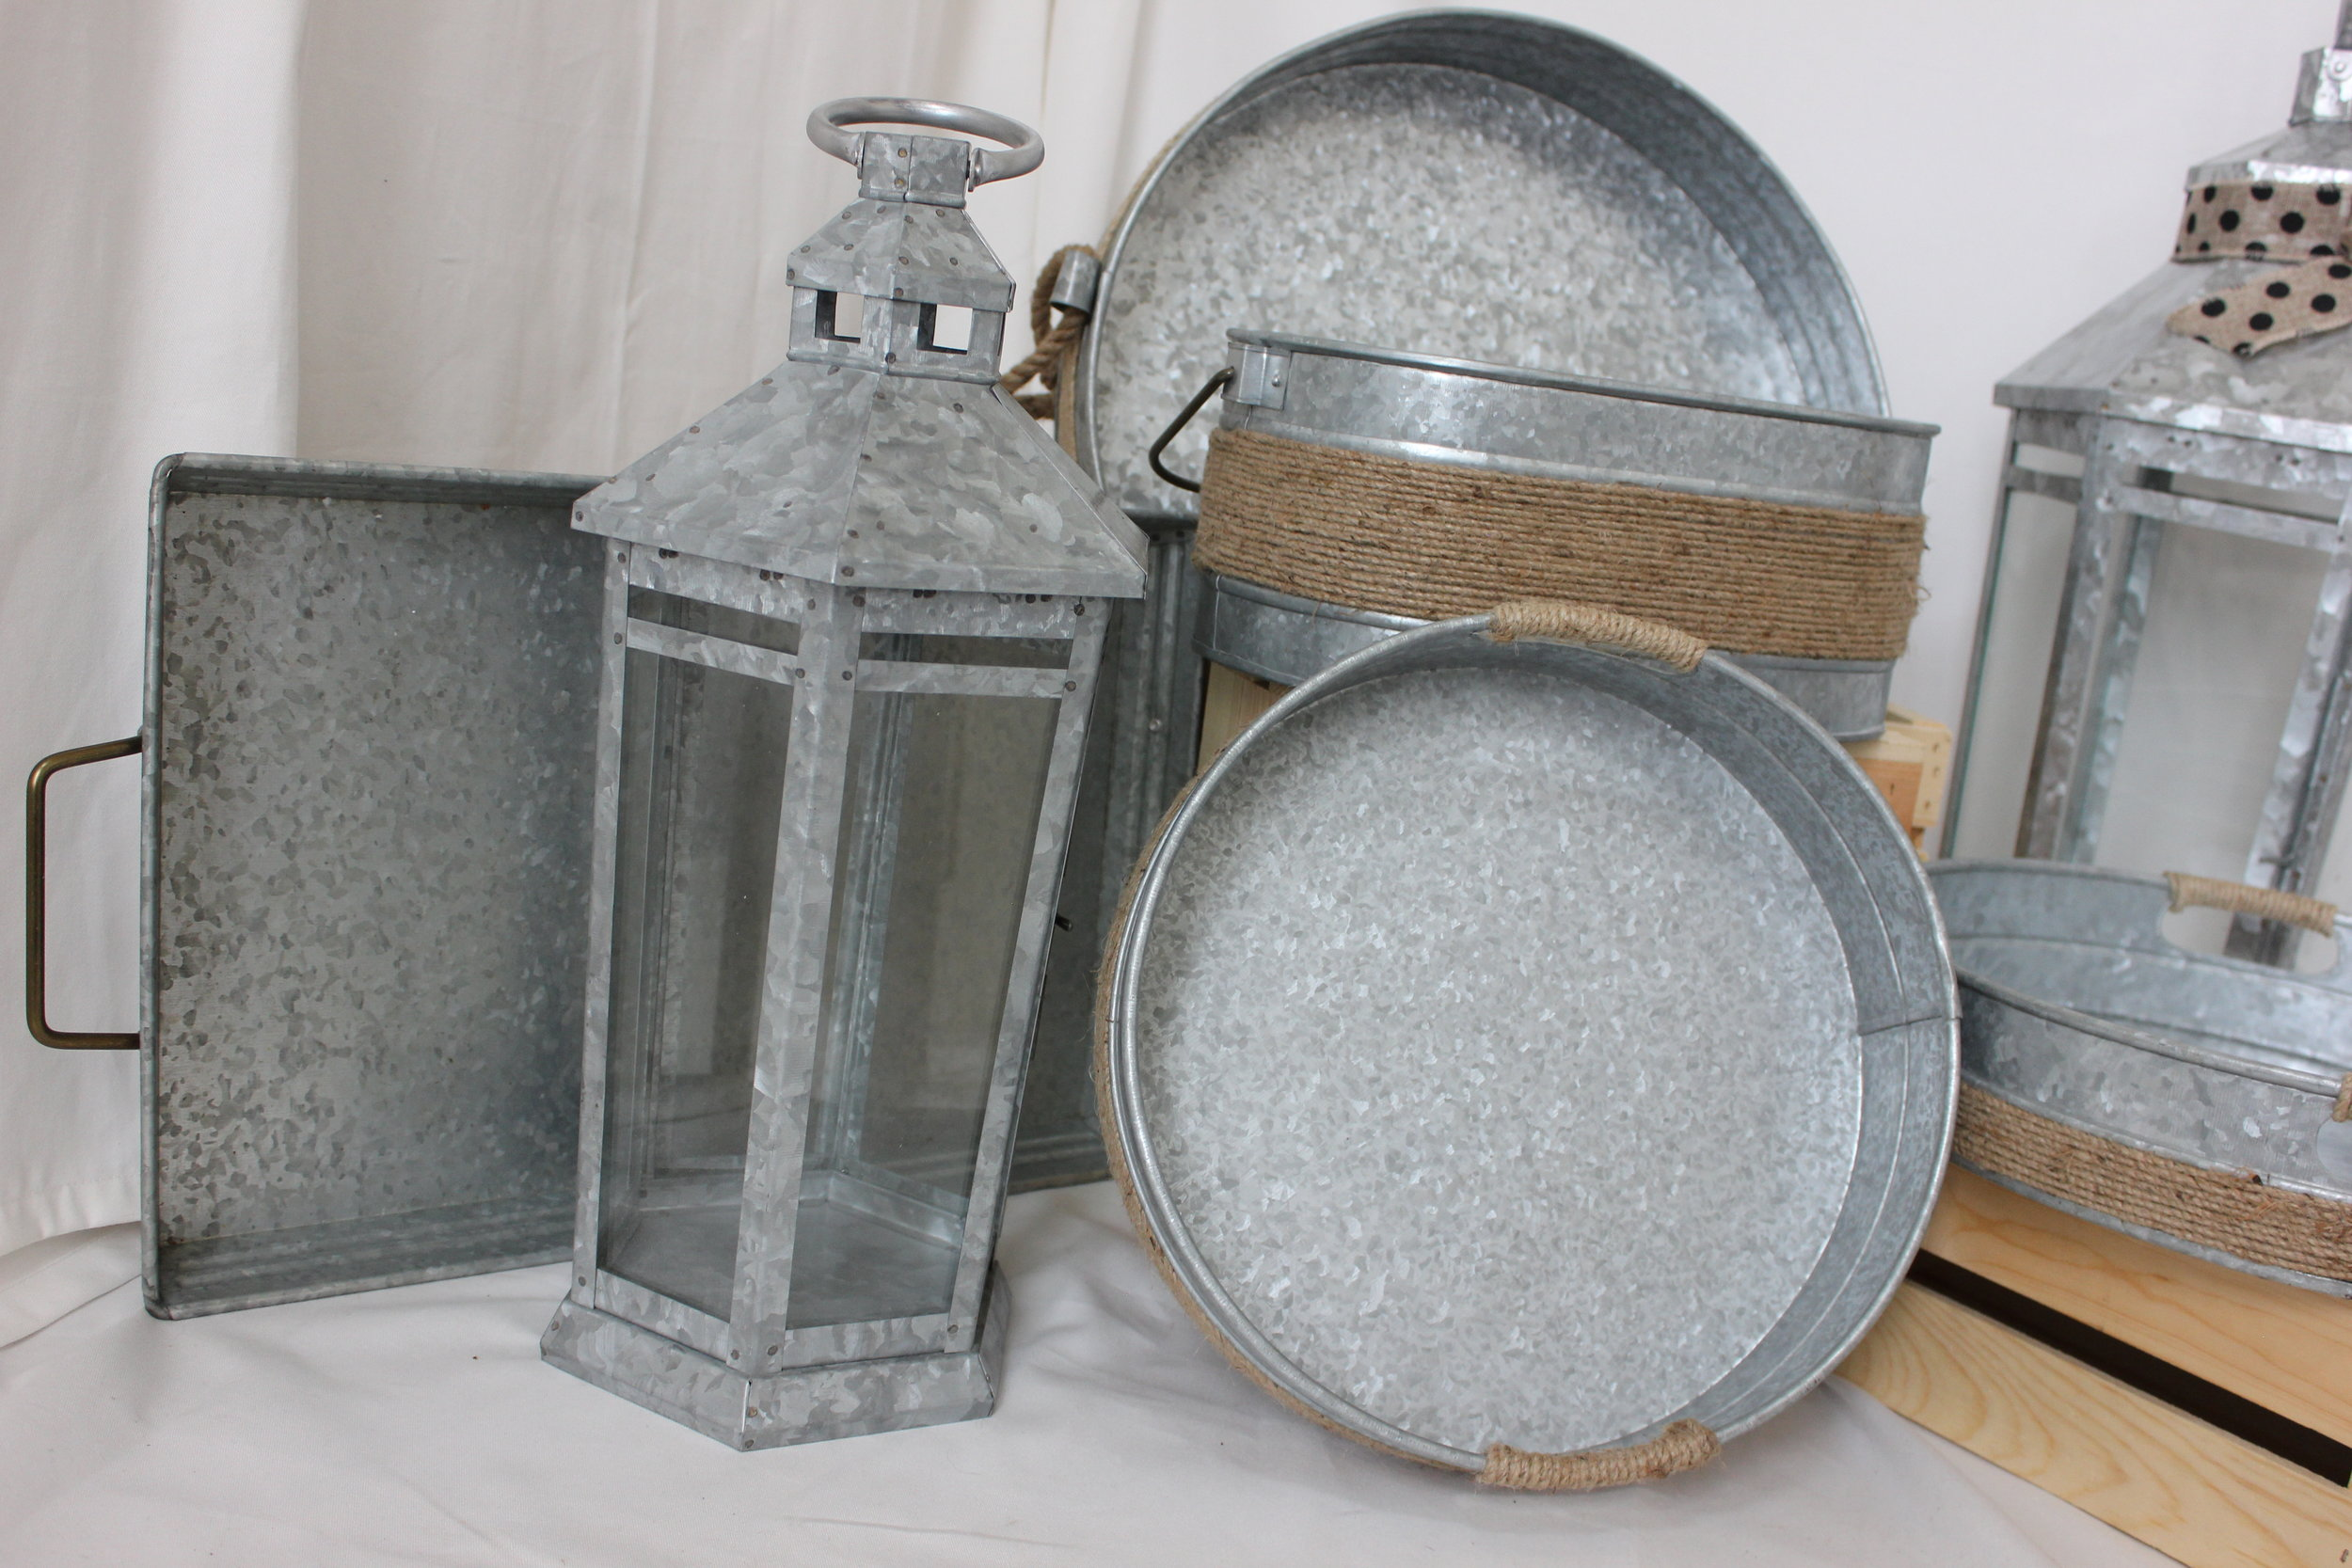 Galvanized Set $70.00